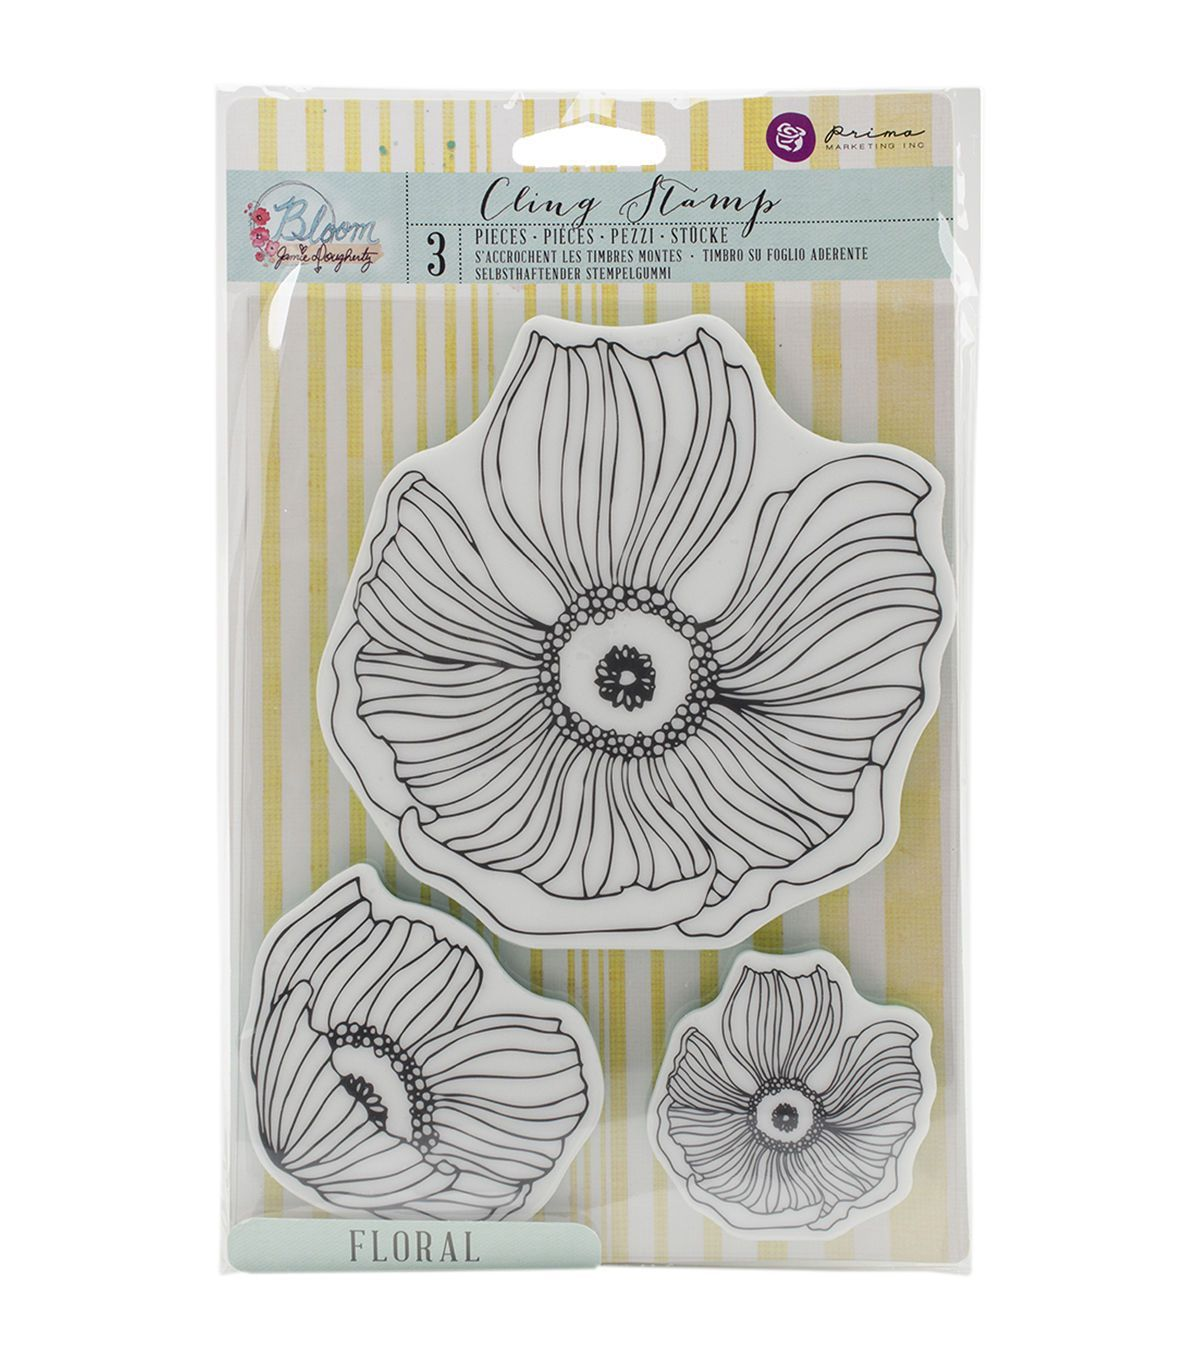 Image result for prima bloom floral stamps